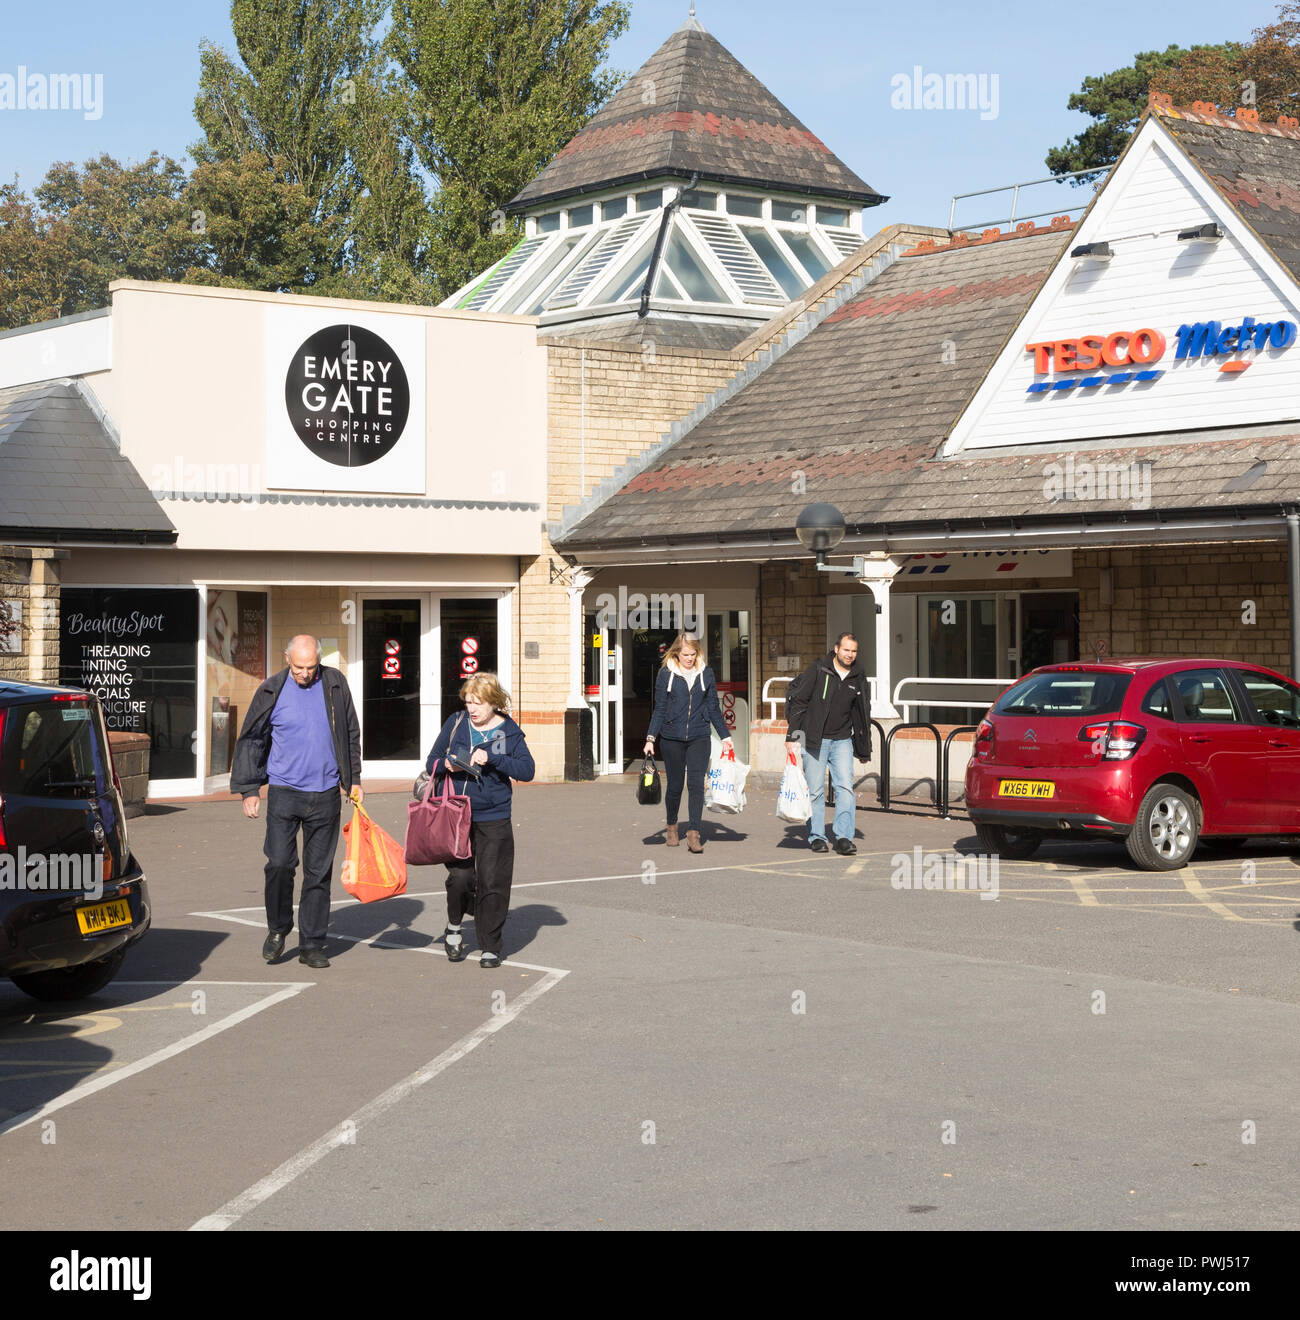 Emery Gate shopping centre car park, Tesco Metro, Chippenham, Wiltshire, England, UK - Stock Image